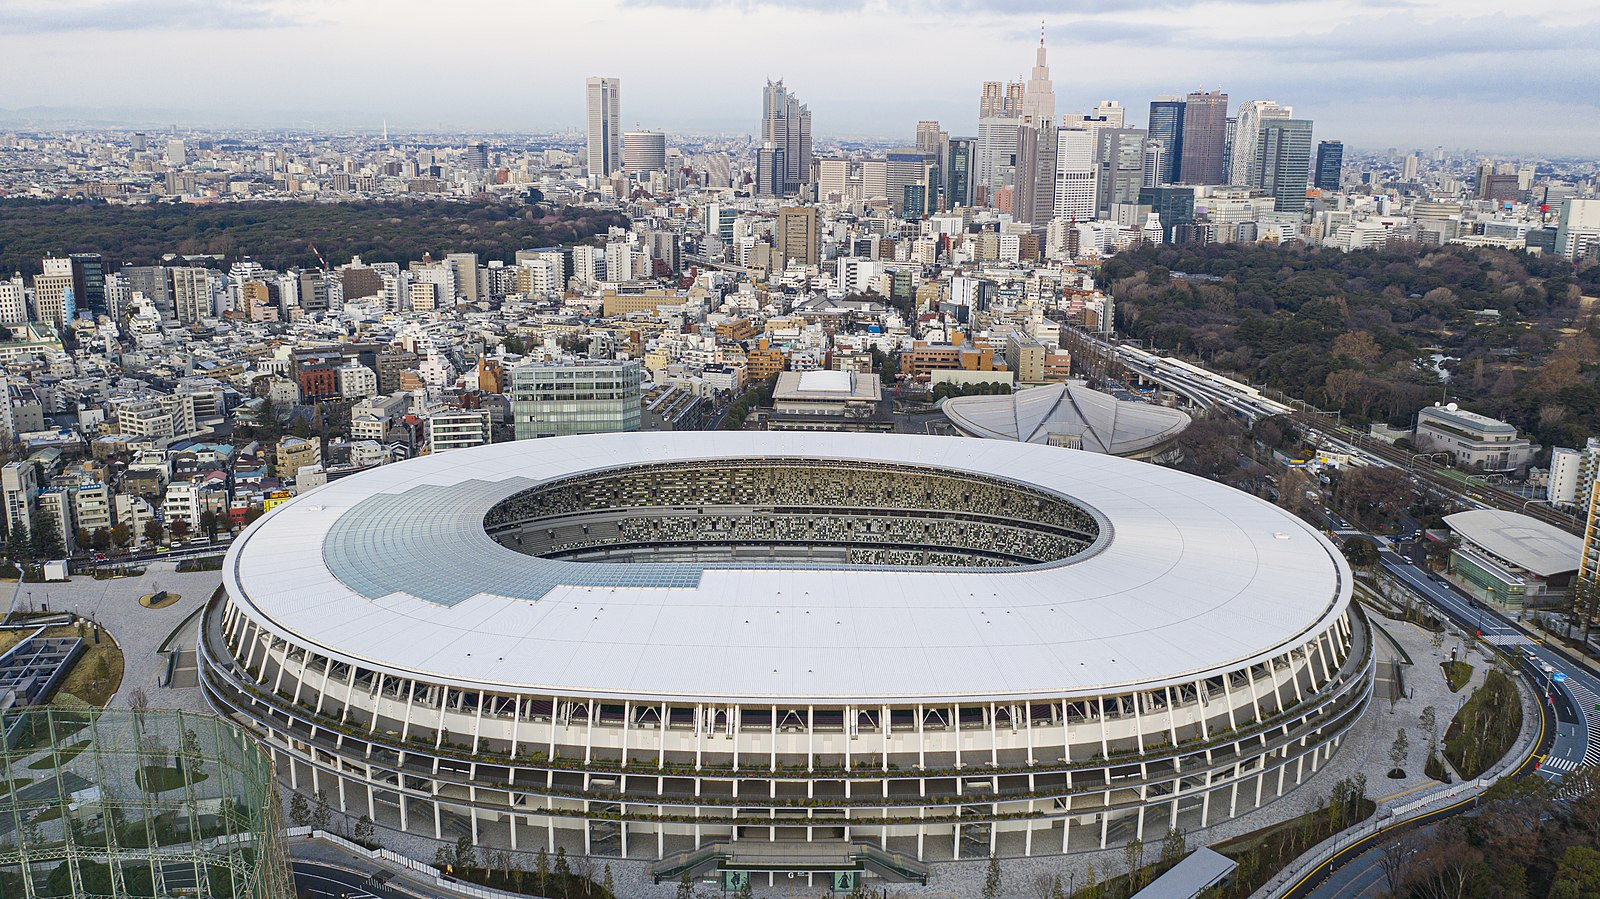 Tokyo 2020 Competition Heats Up, Literally